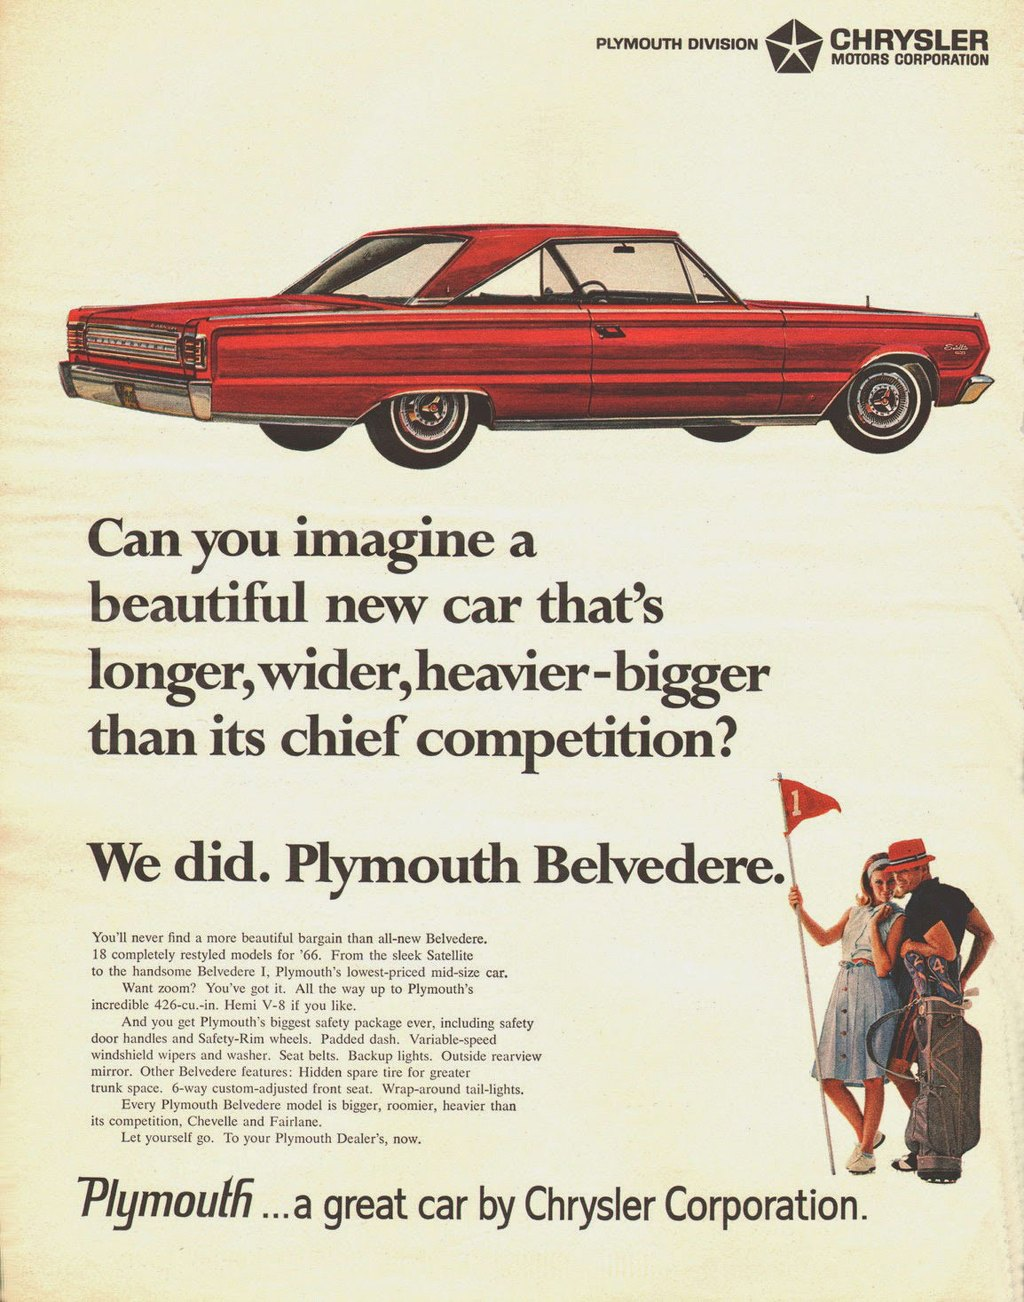 PLYMOUTH DIVISION filik• CHRYSLER Aik MOTORS CORPORATION   Can you imagine a beautiful new car that's longer, wider, heavier-bigger than its chief competition?   We did. The Plymouth Belvedere.  You'll never find a more beautiful bargain than all-new Belvedere. 18 completely restyled models for '66. From the sleek Satellite to the handsome Belvedere I, Plymouth, lowest-priced mid-s. cat. Want zoom? You've got it. All the way up to Plymouth's incredible 426-cu.-in. Henri V-8 if you like. And you get Plymouth's biggest safety package ever, including safety door hand. and Safety-Rini wheels. Padded dash. Variable-speed windshield wipers and washer. Seat belts. Backup lights. Outside rearview mirror. Other Belvedere features, Hidden spare tire for greater trunk space. 6-way custom-adjusted front seat. Wrap-around tail-lights. Every Plymouth Belvedere model is bigger, roomier, heavier than its competition, ChewIle and Fairlane. Let yourself go. To your Plymouth Dealer's, now,  Plymoulfi ...a great car by Chrysler Corporation.